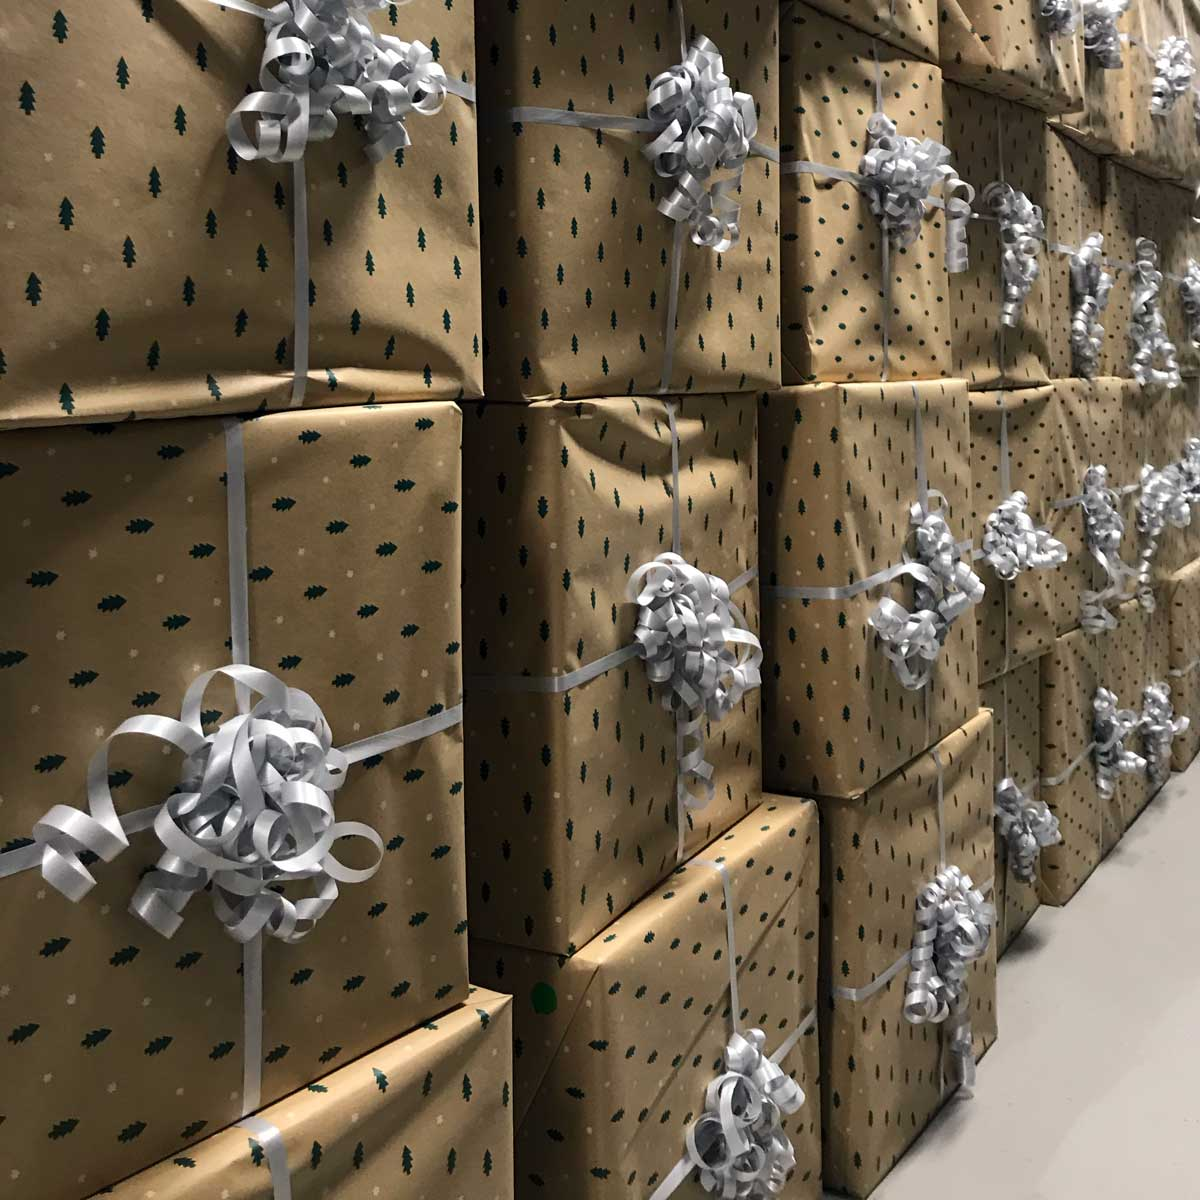 Kindred Group Christmas presents packed in golden boxes